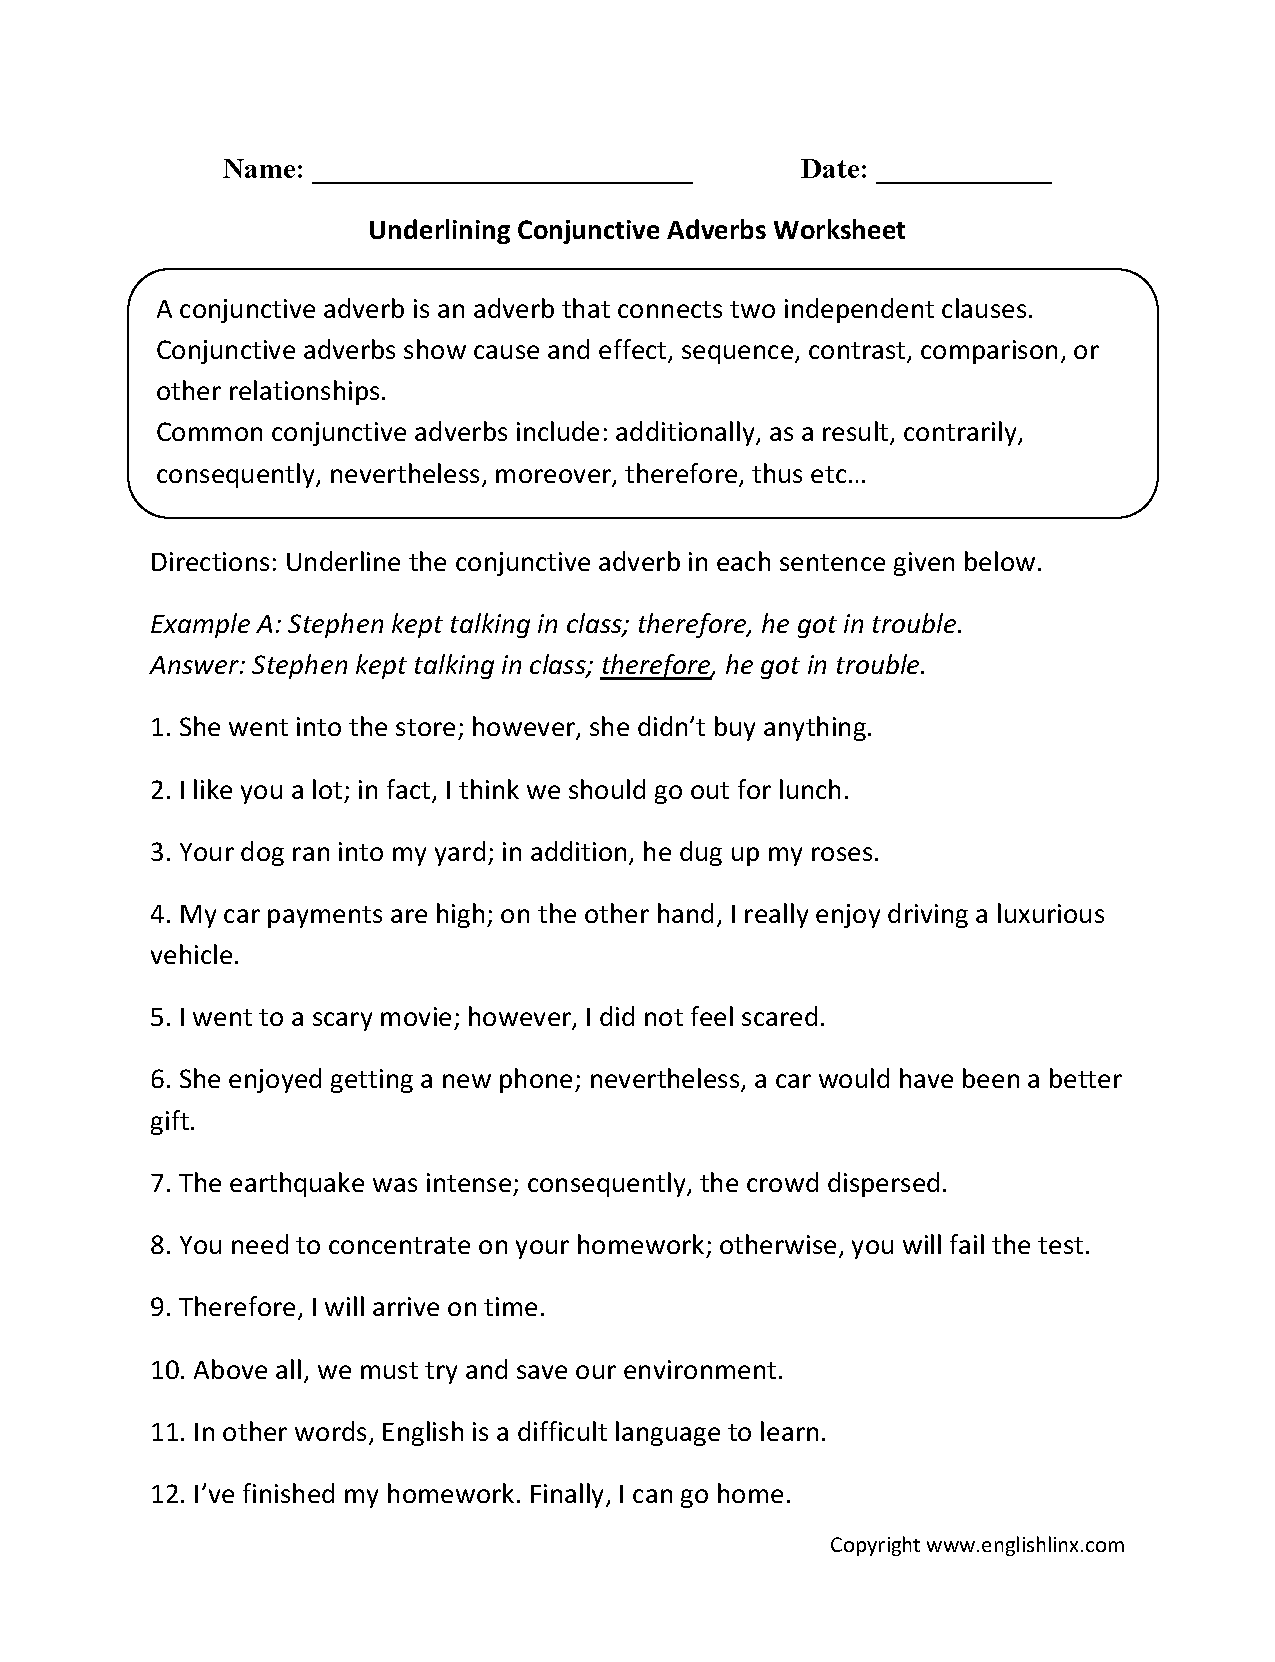 Weirdmailus  Outstanding Englishlinxcom  Conjunctions Worksheets With Engaging Worksheet With Nice Daily Science Worksheets Also Main Idea Worksheets For Th Grade In Addition Freedom Writers Worksheet And Phonic Worksheets For First Grade As Well As Algebra  Exponential Functions Worksheet Additionally Coin Worksheets For Kindergarten From Englishlinxcom With Weirdmailus  Engaging Englishlinxcom  Conjunctions Worksheets With Nice Worksheet And Outstanding Daily Science Worksheets Also Main Idea Worksheets For Th Grade In Addition Freedom Writers Worksheet From Englishlinxcom